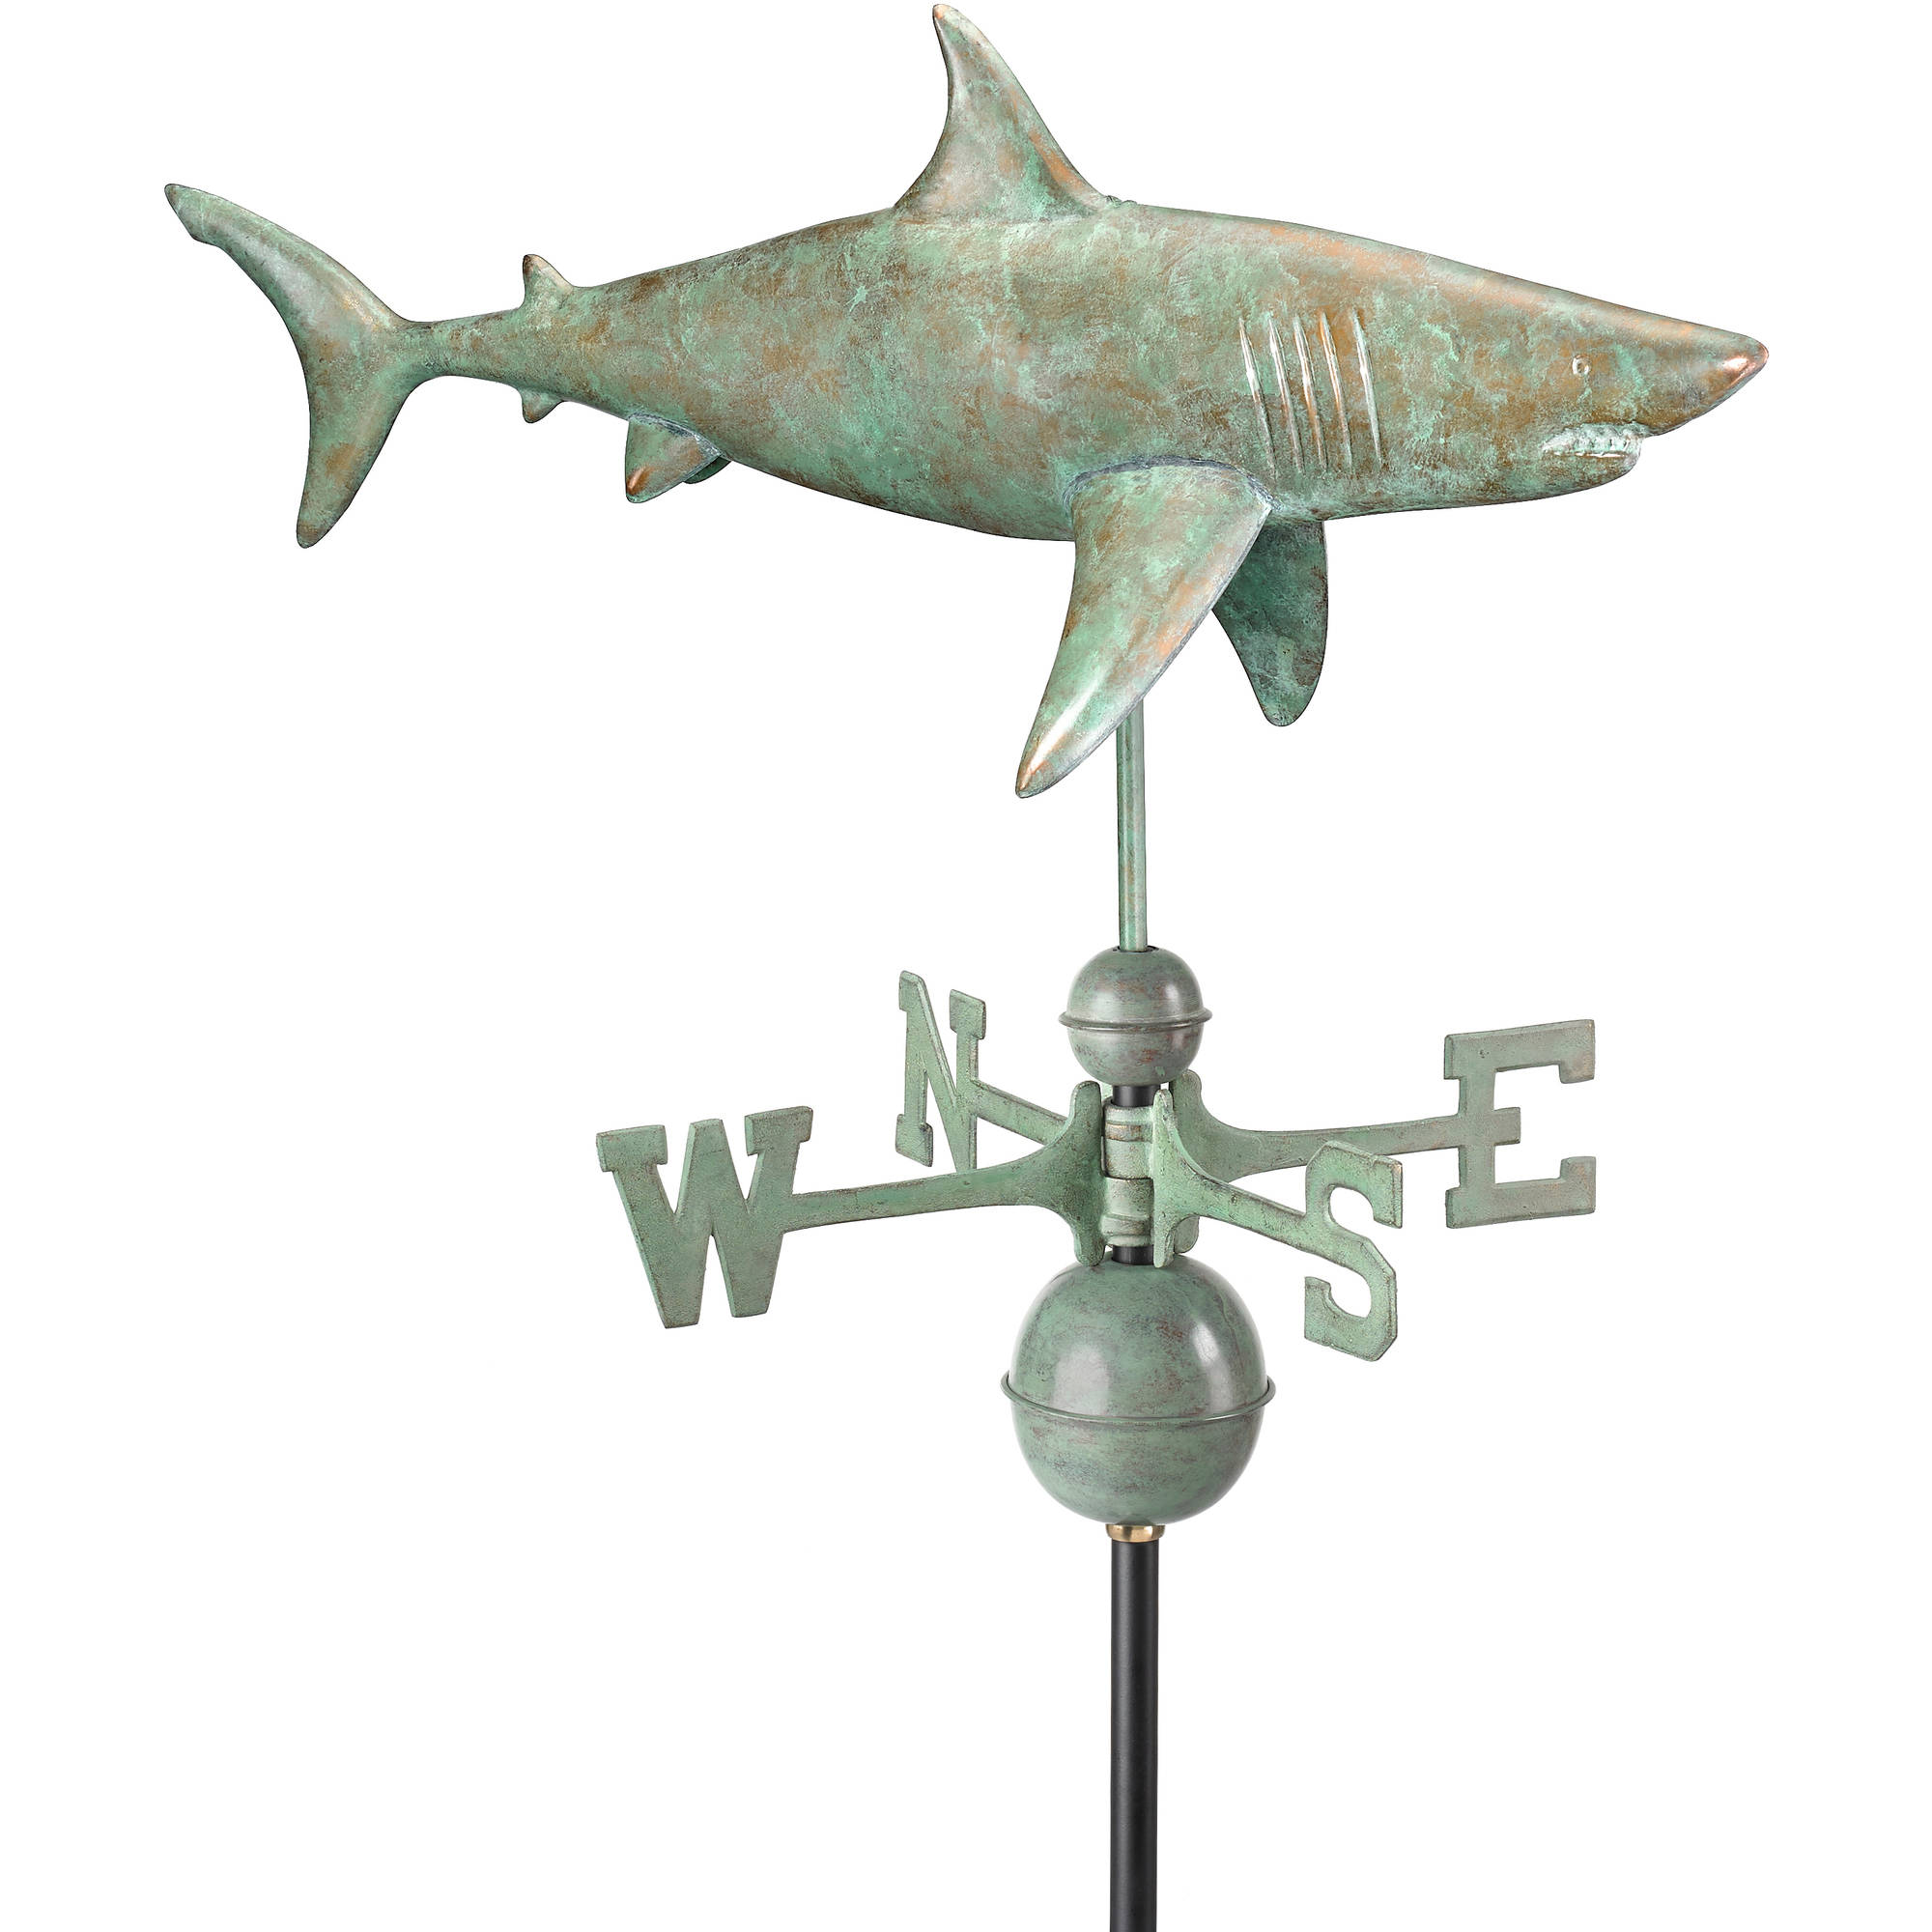 Shark Weathervane Blue Verde Copper by Good Directions by Good Directions